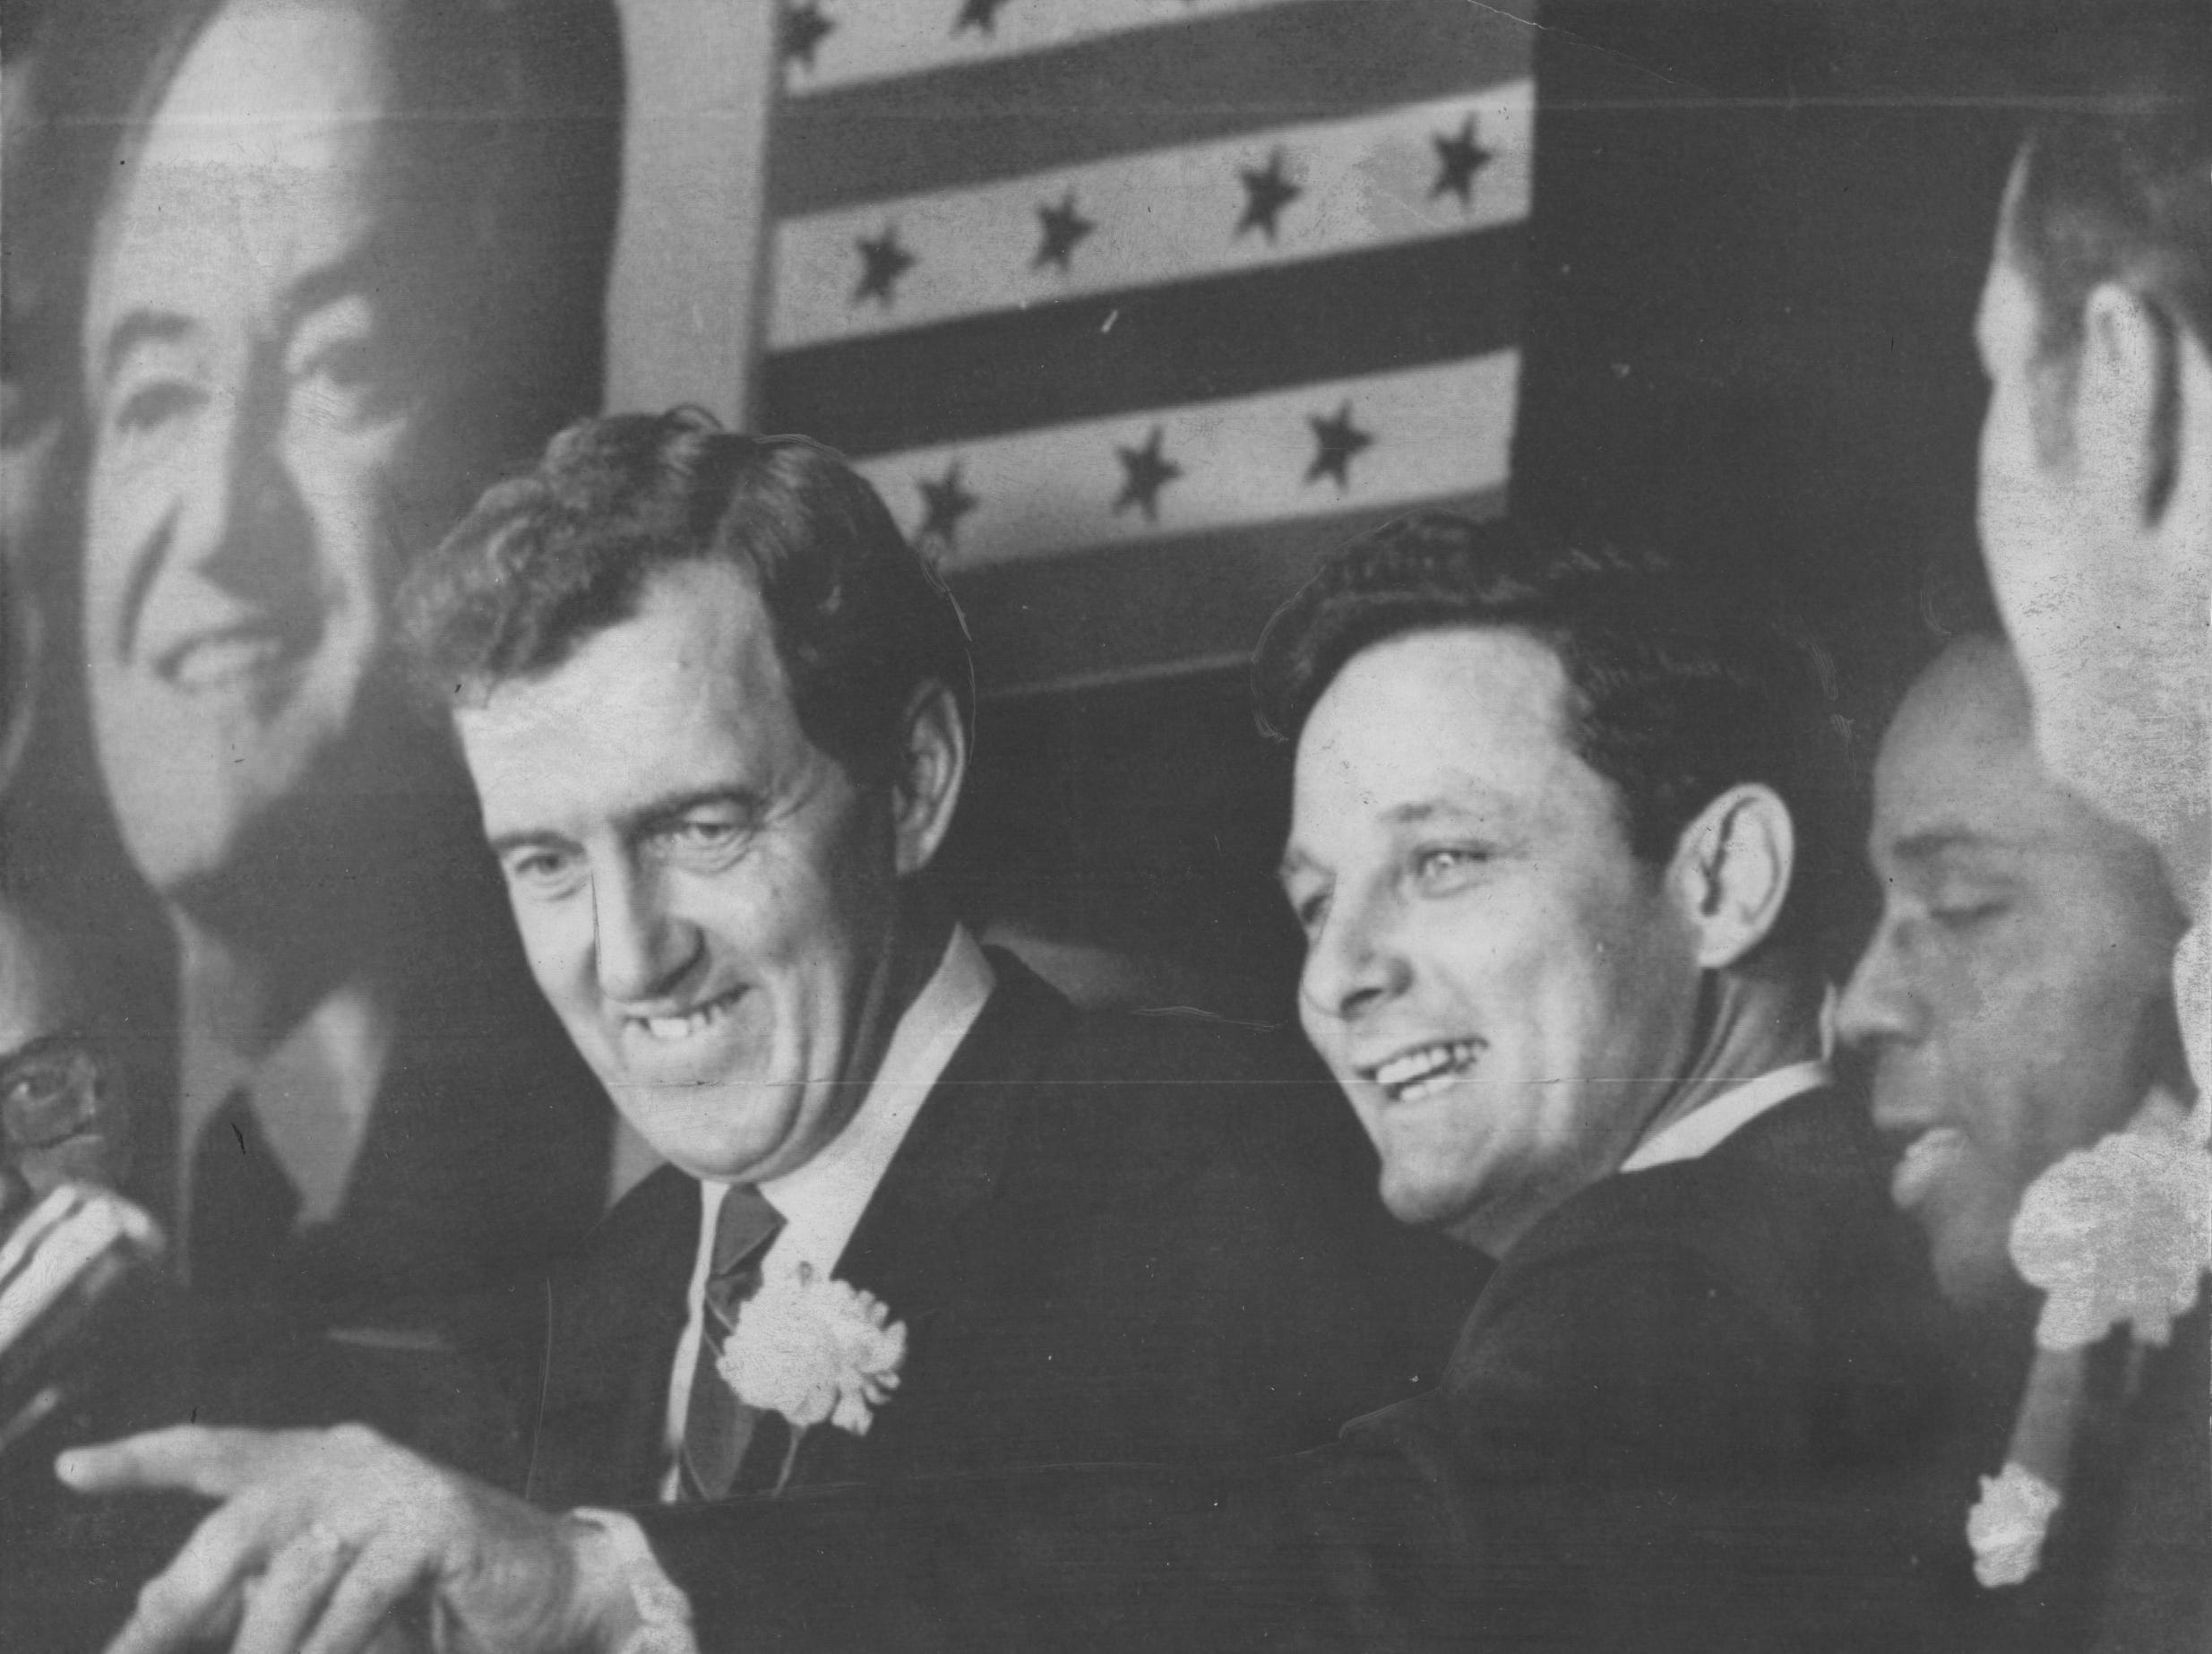 Hammond, IN Oct 18, 1968: Speaking at $100-a-plate dinner in Democratic stronghold, Lake County, Indiana Sen. Edmund. S. Muskie, seen with Indiana senator, Birch Bayh, and Gary mayor Richard G. Hatcher, with their favorite on a poster in background, H. H. Humphrey.